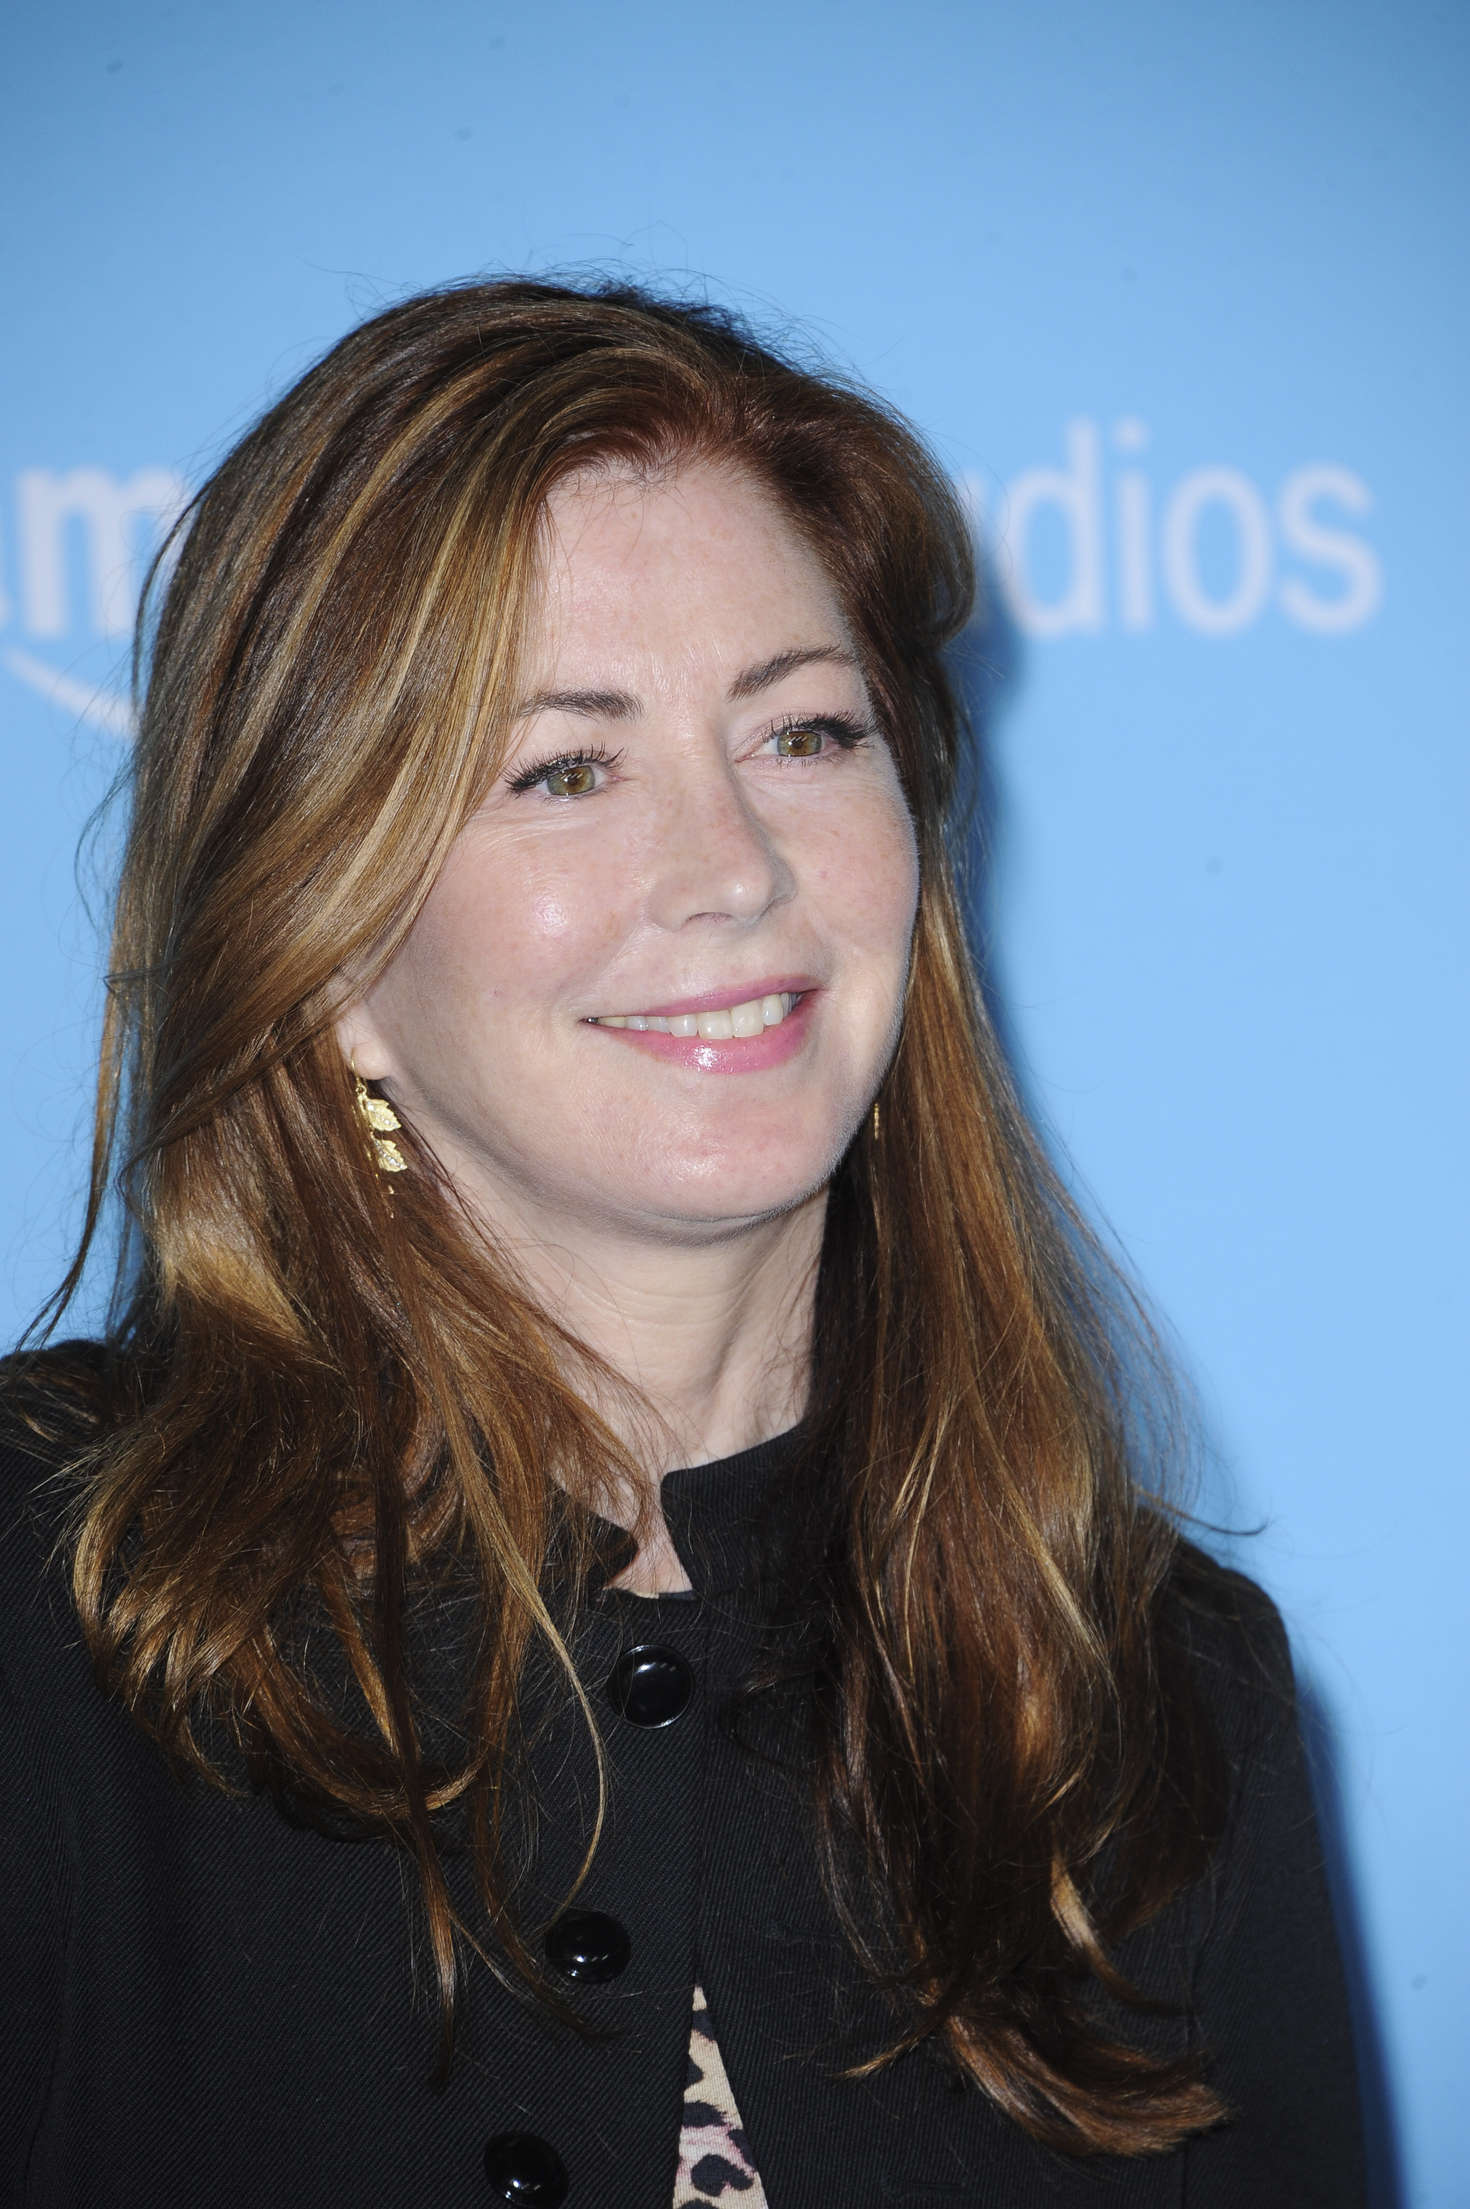 Dana Delany Love and Friendship Premiere in Los Angeles